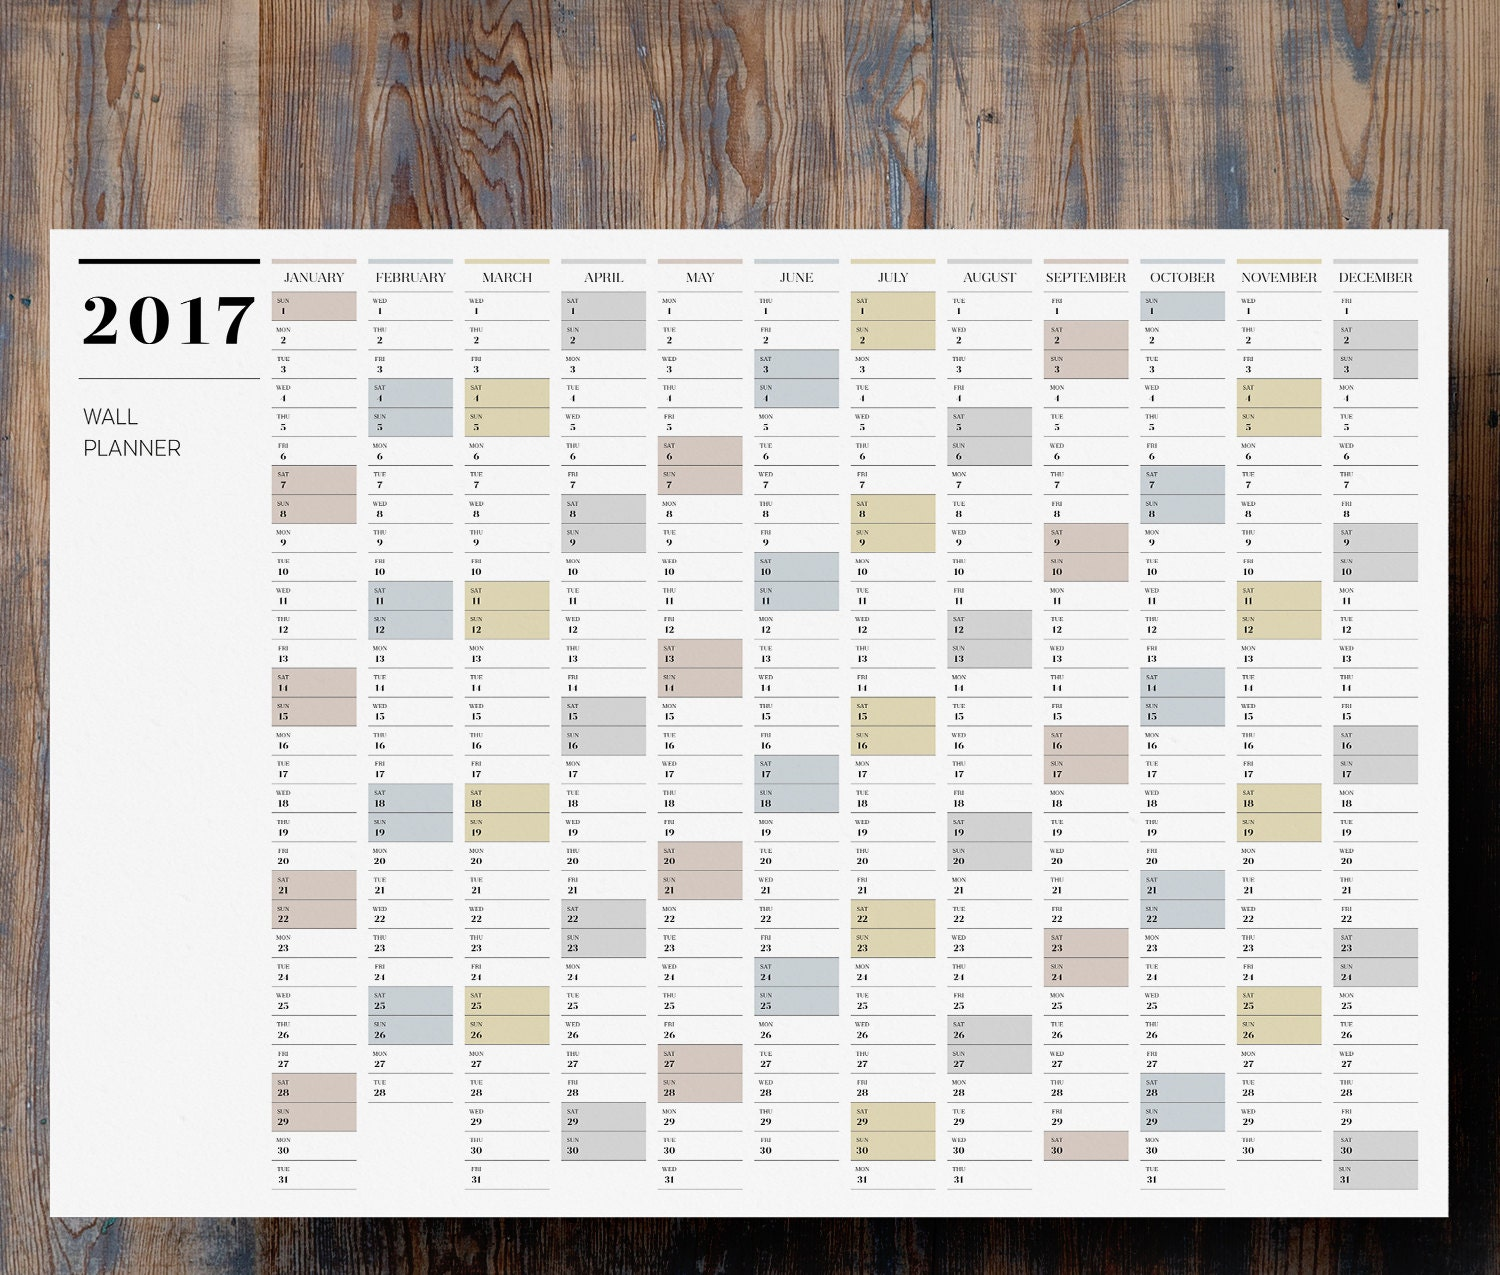 Printable PDF A2 Wall Planner 2017 Large Full Year By